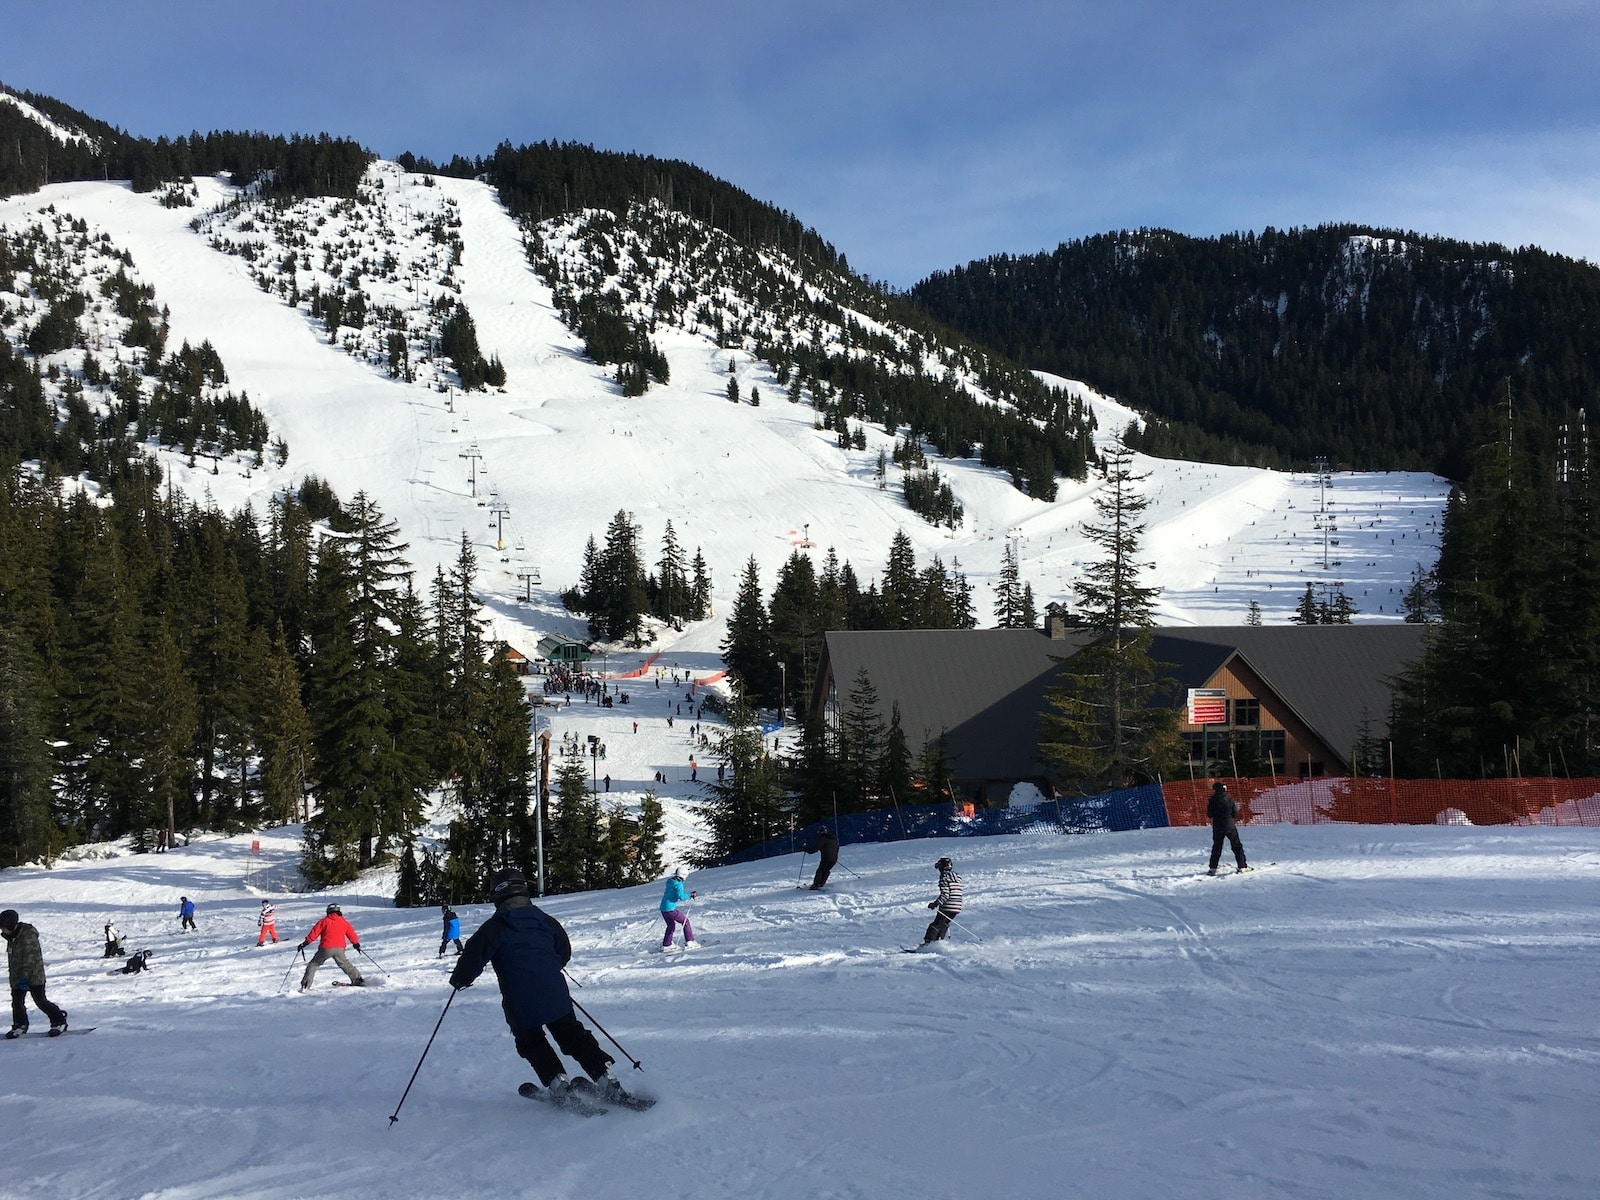 Image of skiers and snowboarders going down the slopes at Cypress Mountain in Canada